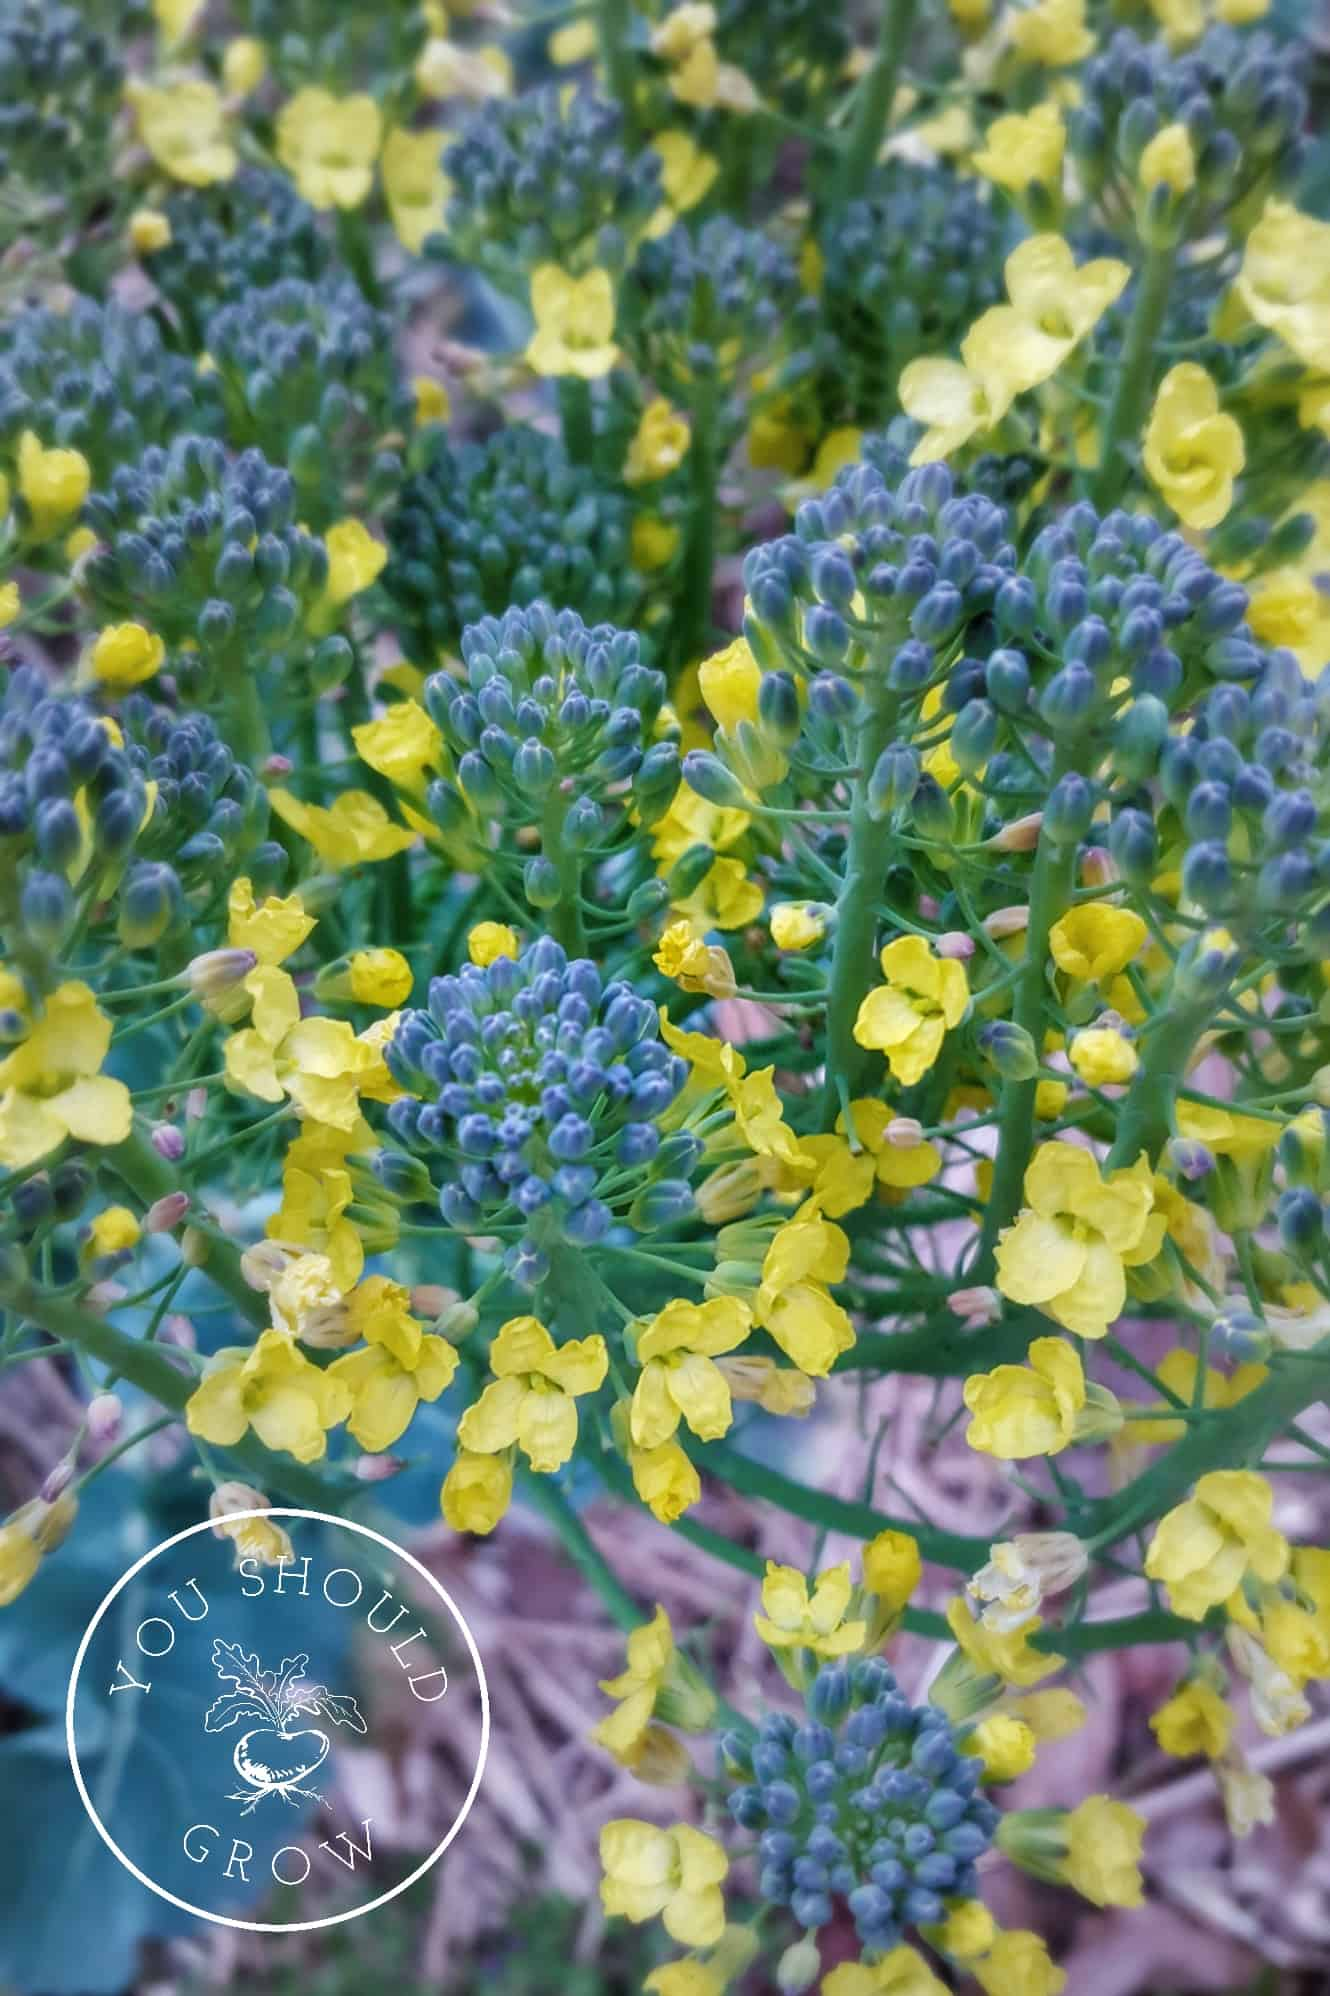 Growing broccoli tricks to grow big broccoli heads you should grow tips for growing broccoli image the delicate yellow flowers on broccolini youshouldgrow mightylinksfo